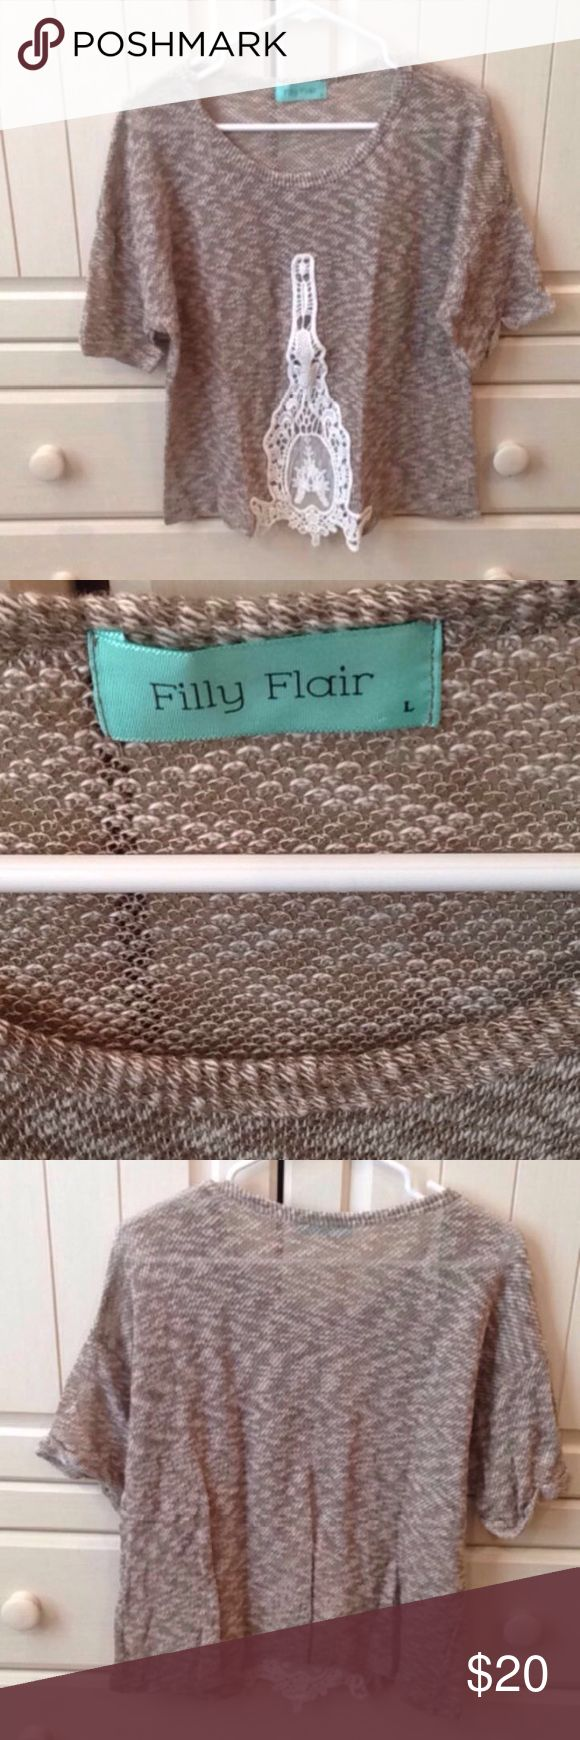 NWOT Lace detailed shirt Cute shirt from Filly Flair. Great condition. NWOT Filly Flair Tops Tees - Short Sleeve